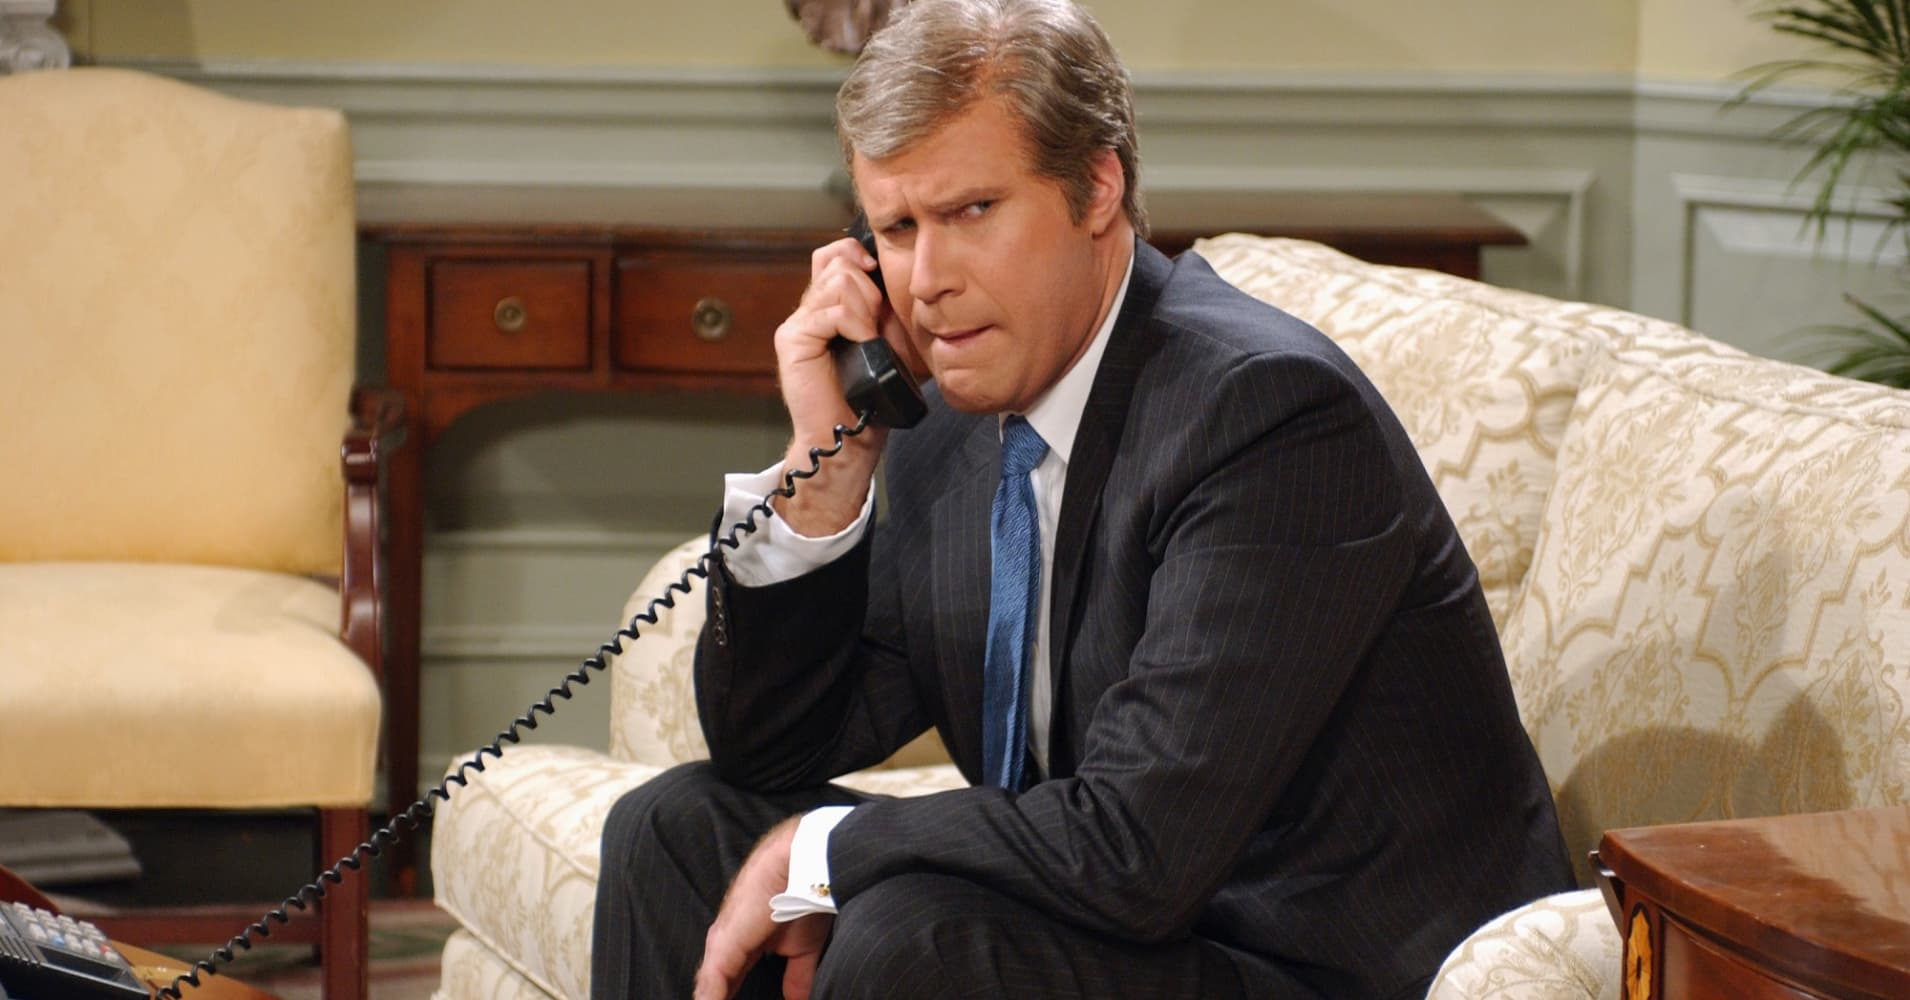 Will Ferrell on Saturday Night Live